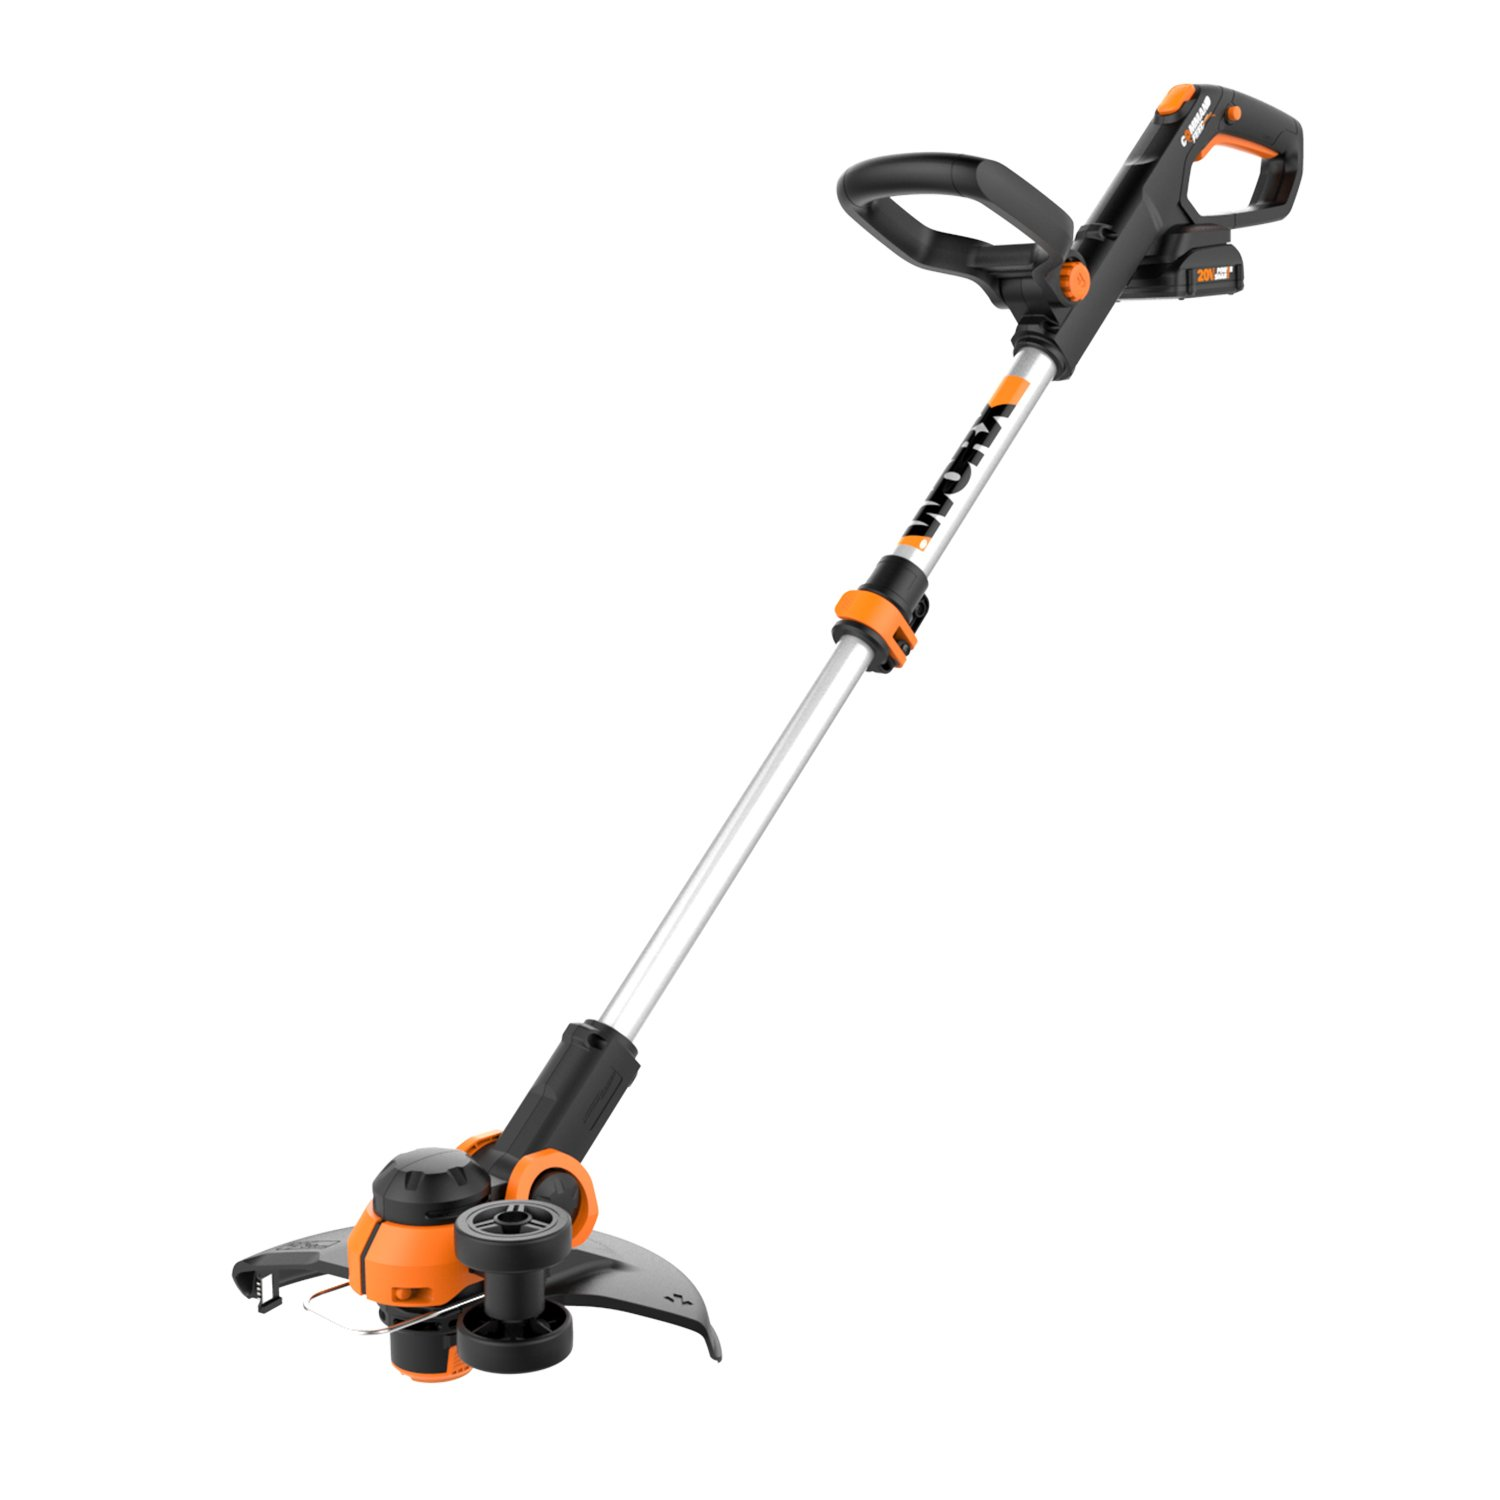 Worx WG163 GT 3.0 20V Cordless Grass Trimmer/Edger with Command Feed, 12'', 2 Batteries and Charger Included